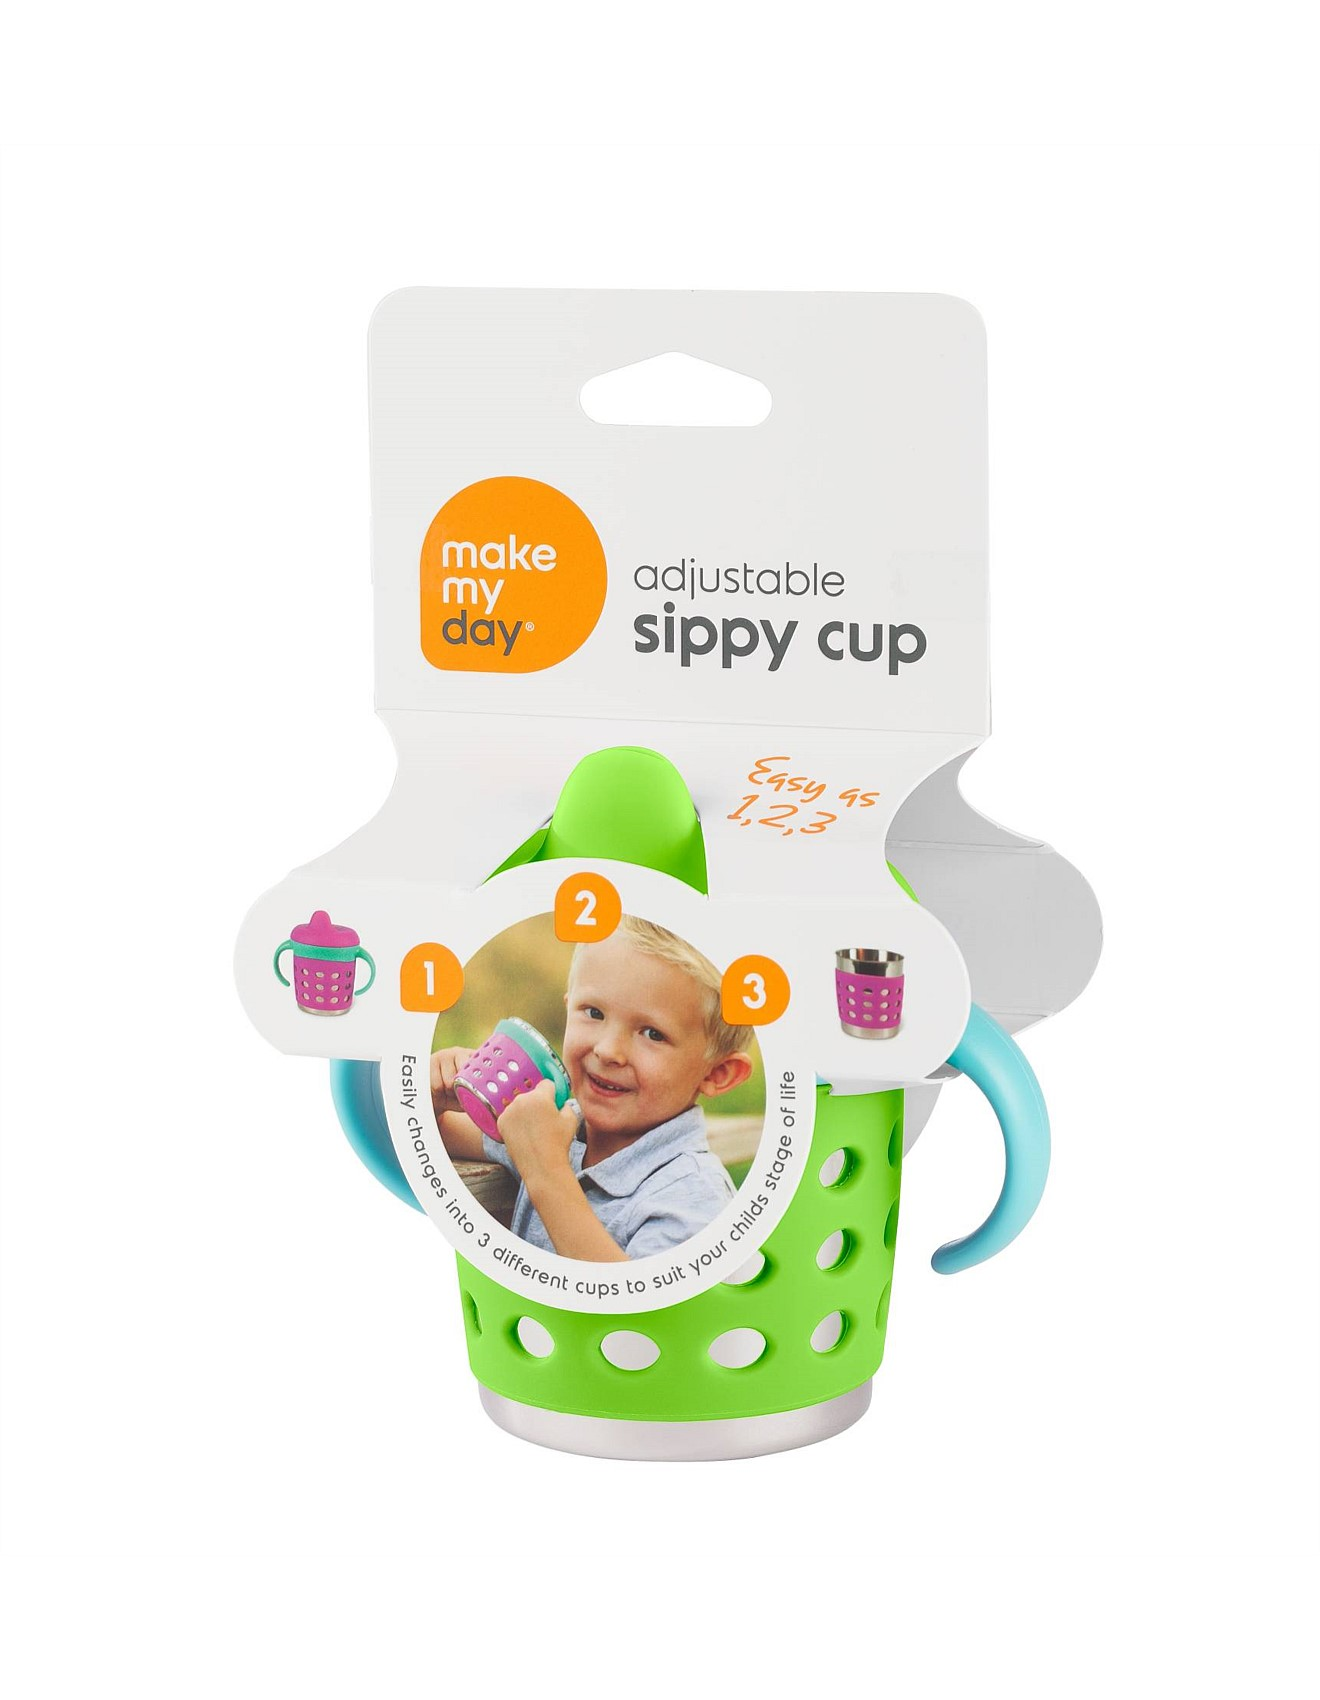 Sippy cups and tooth decay